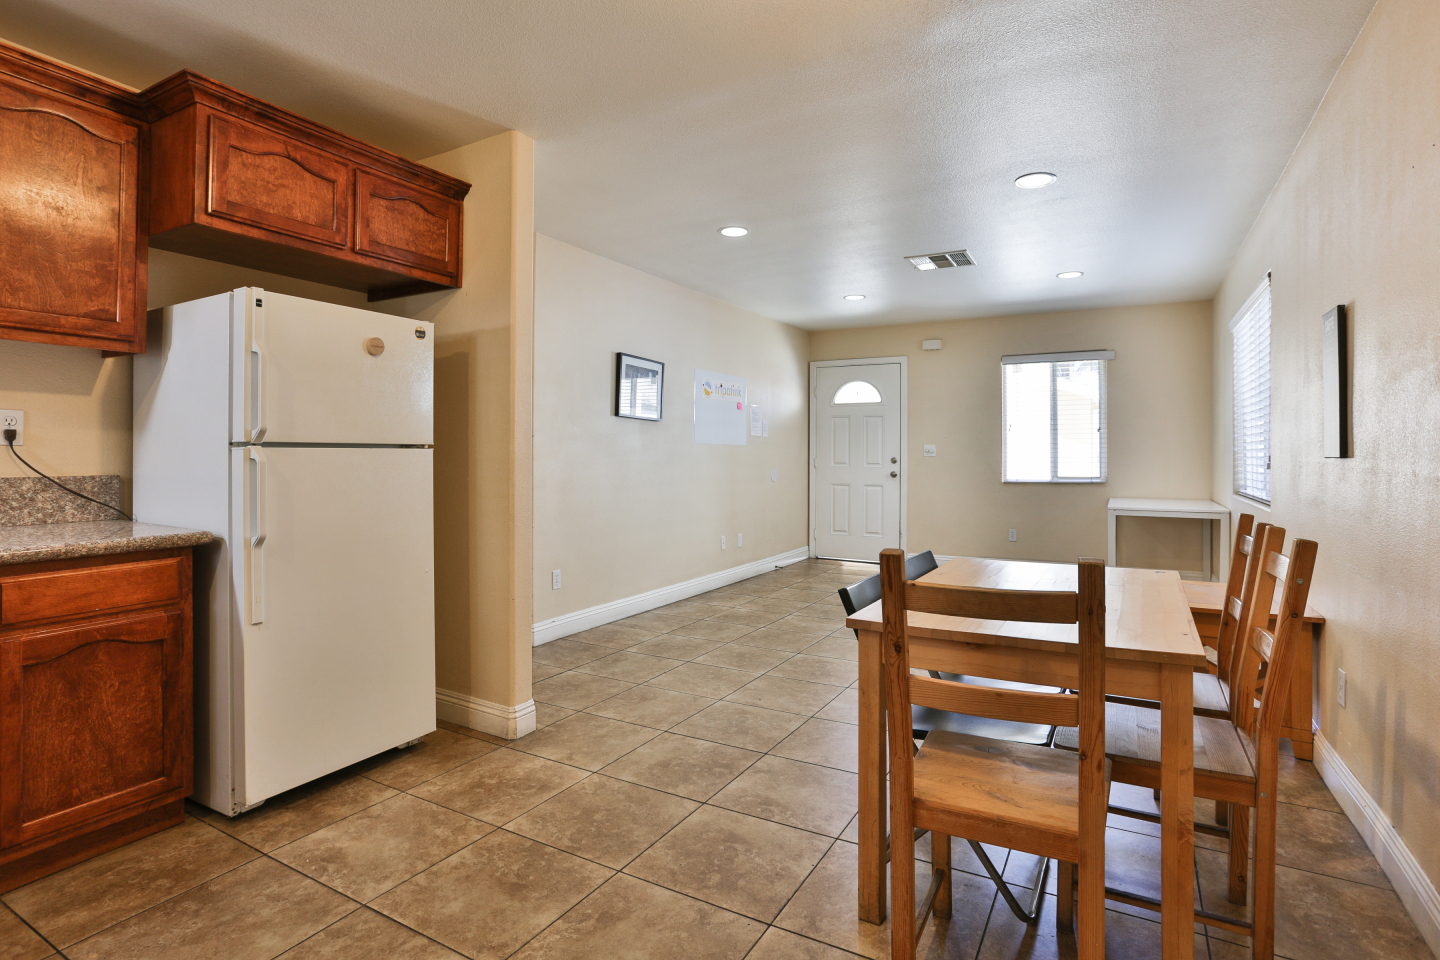 kitchen and living room view, Granite floors